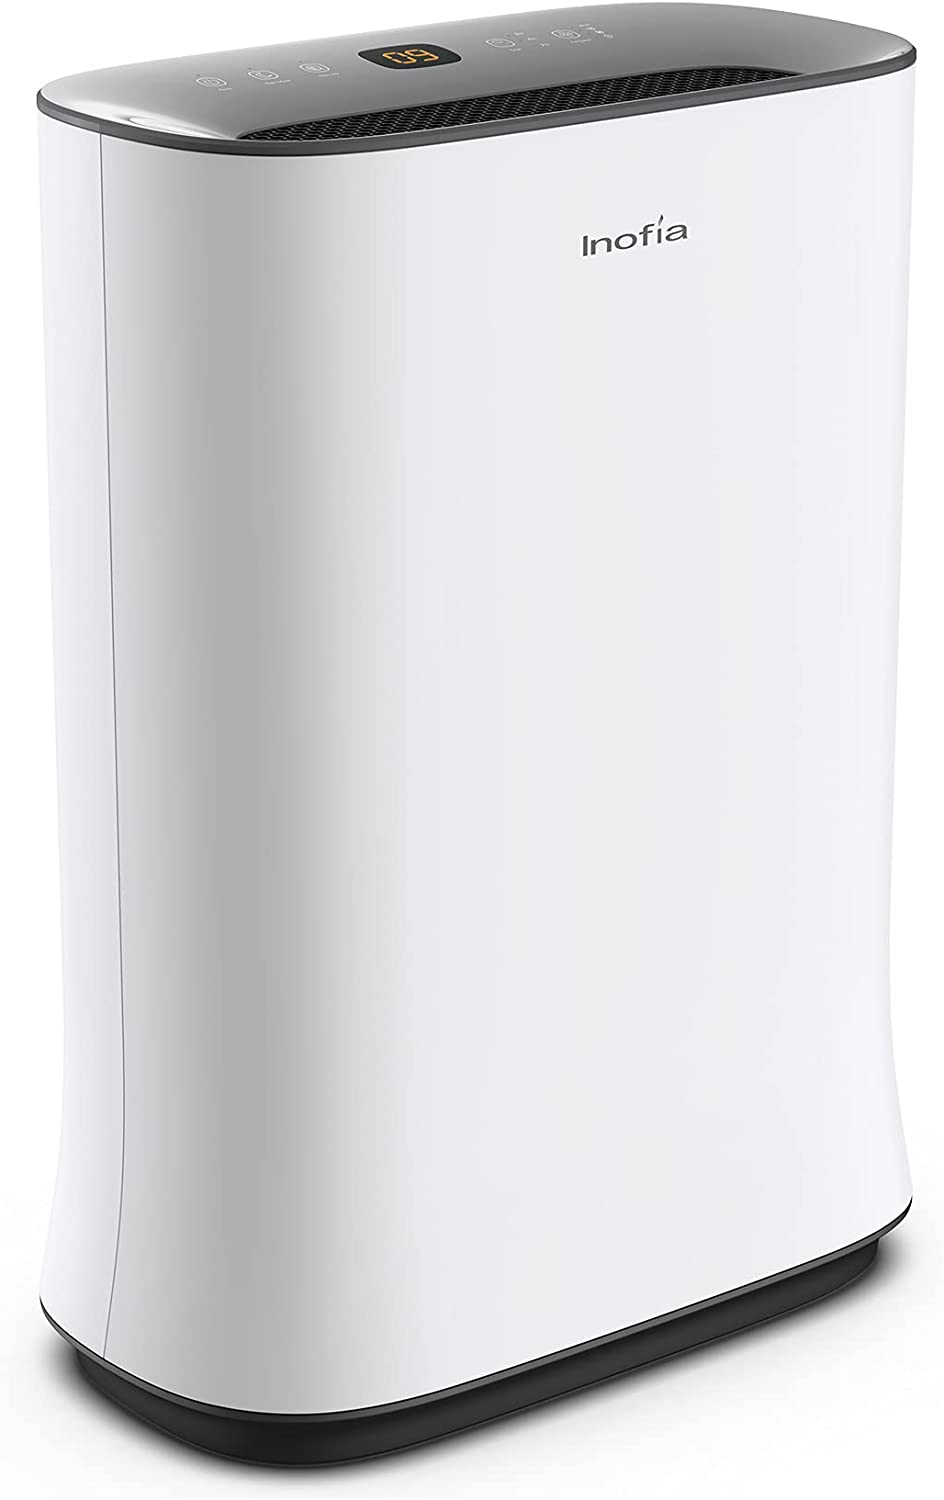 Inofia Air Purifier with True HEPA Air Filter, Air Cleaner for Large Room, for Spaces Up to 800 Sq Ft, Perfect for Home/Office with Filter (800sq.ft)